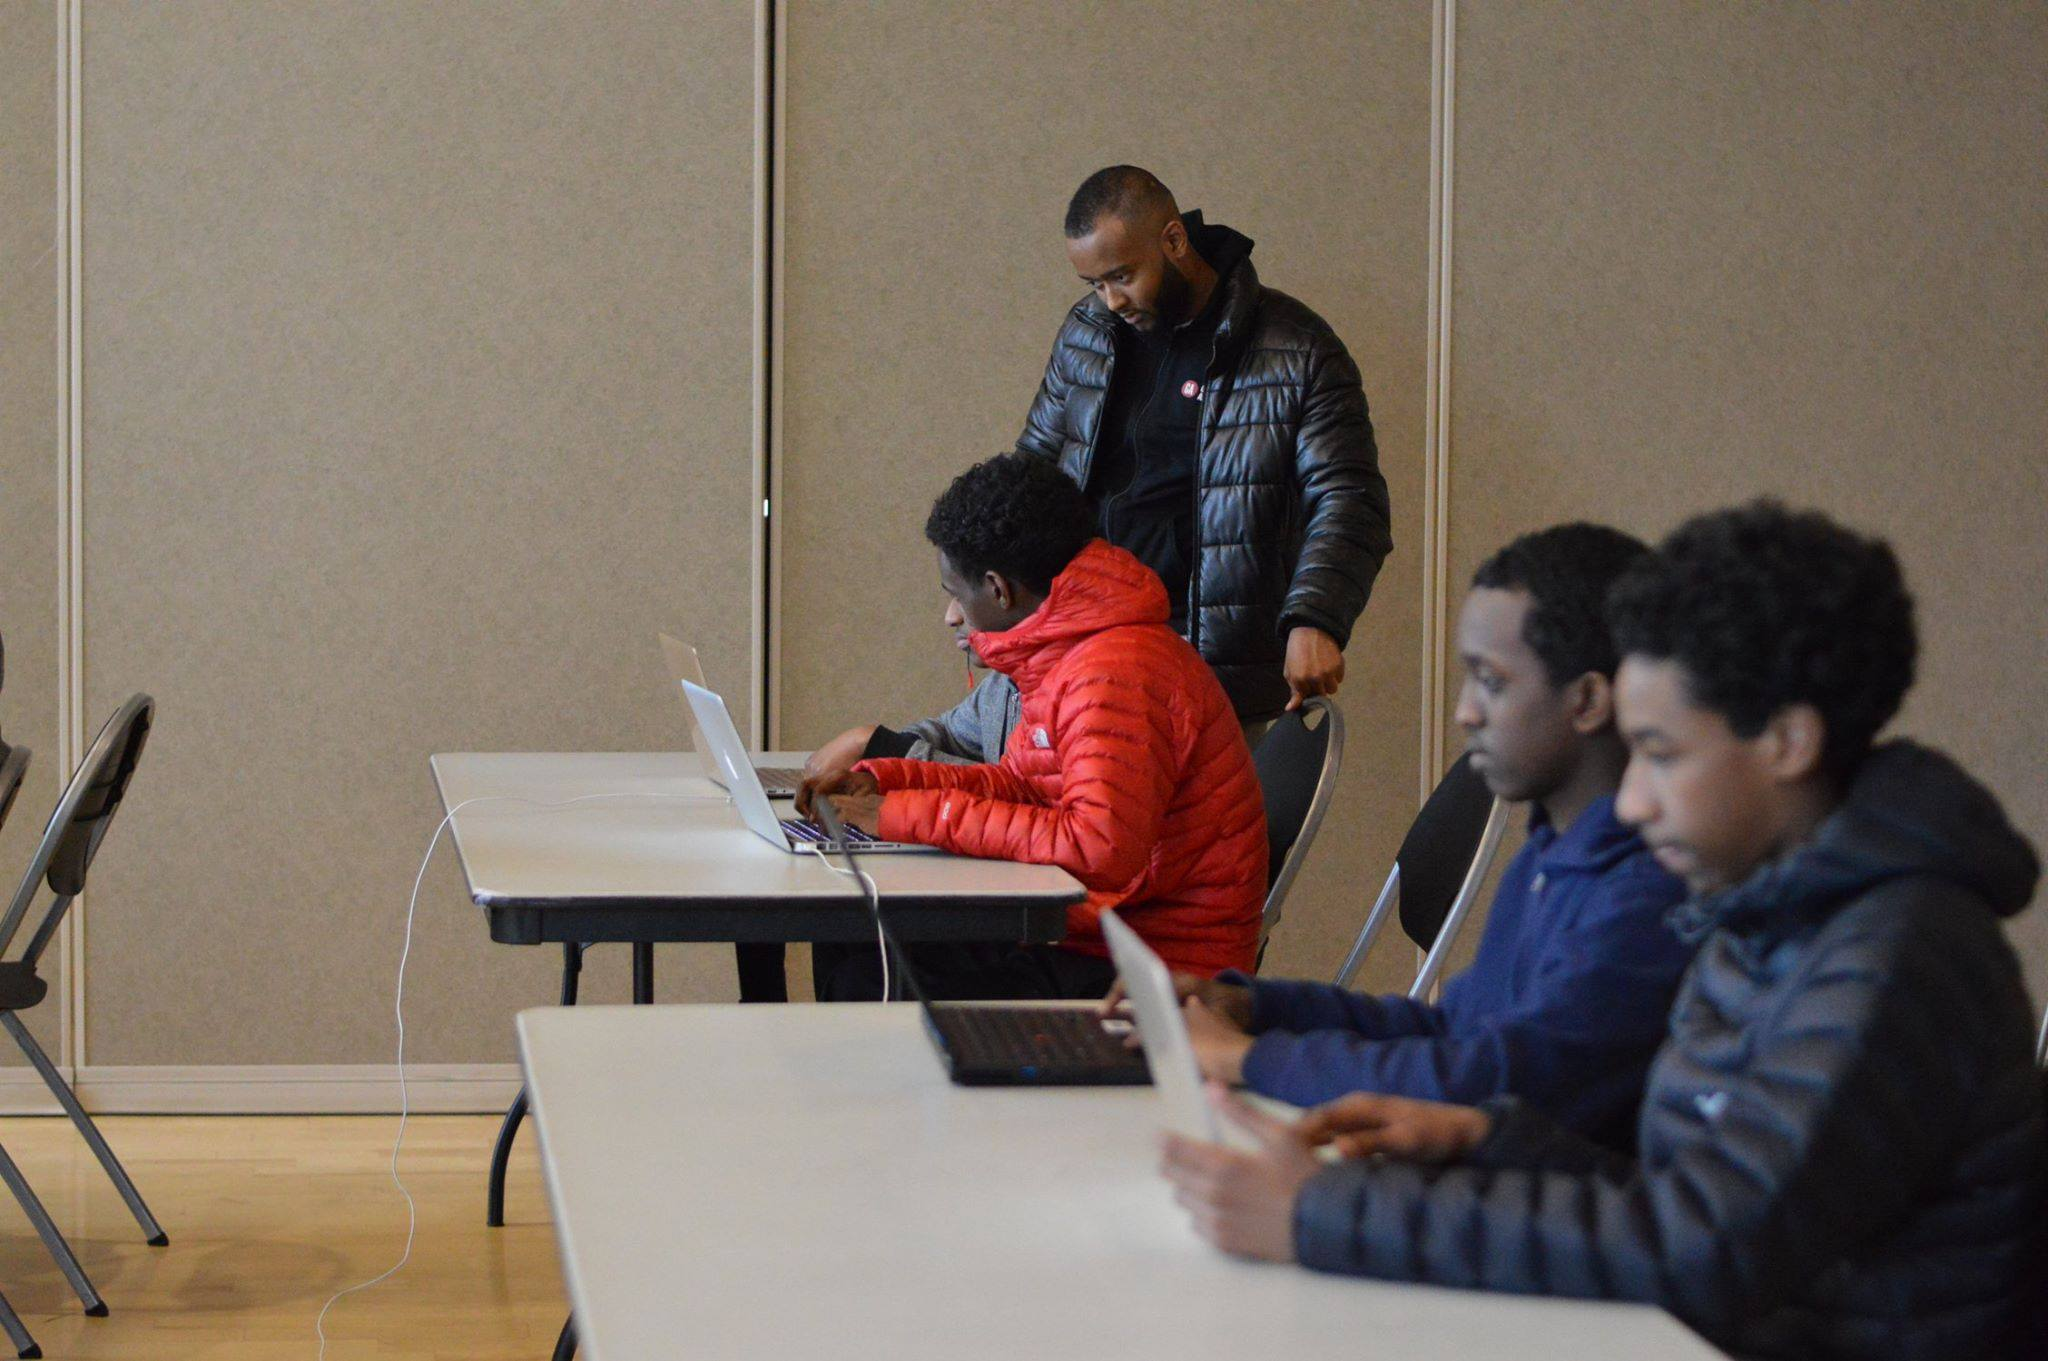 Web Development Bootcamps - Our Web Development cohorts range from 4 weeks to 6 weeks. Where we take inner city under served High Schoolers and teach them to build mobile-responsive websites.